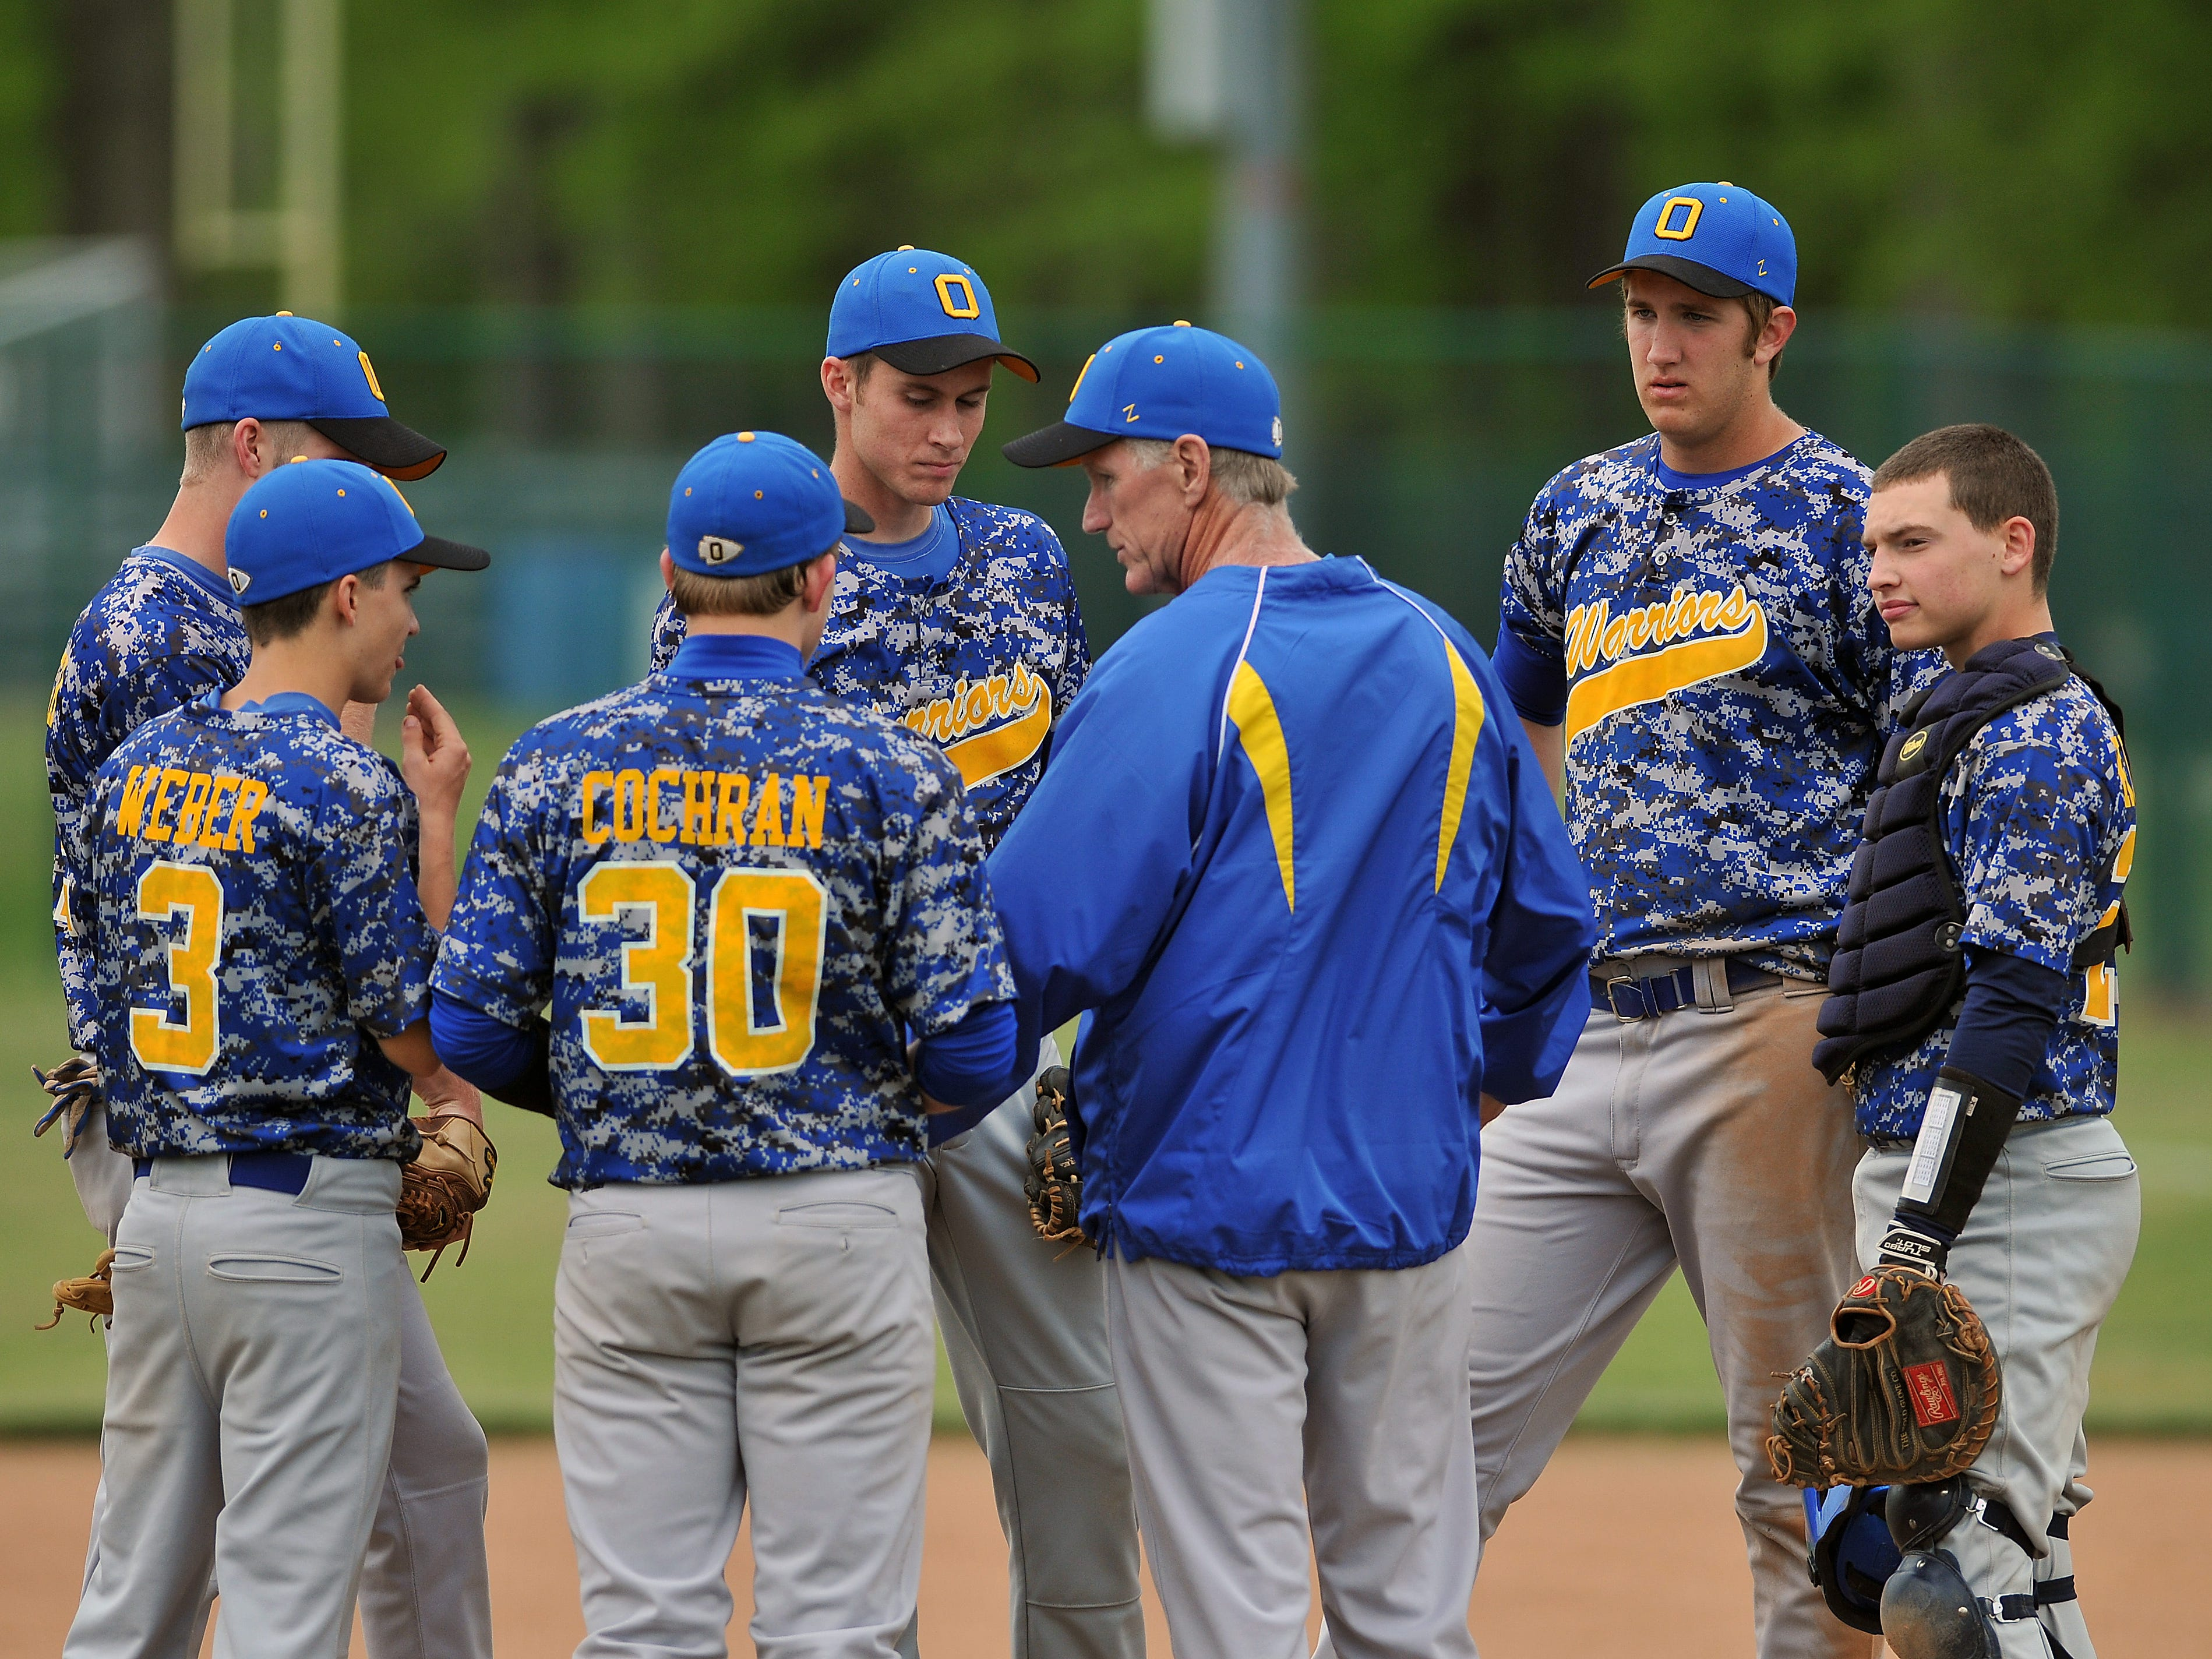 Ontario baseball coach Dan Gorbett meets with his team during Thursday's 7-2 sectional final win over Galion. The top-seeded Warriors will play Shelby Thursday afternoon at Madison in a Division II district semifinal game.